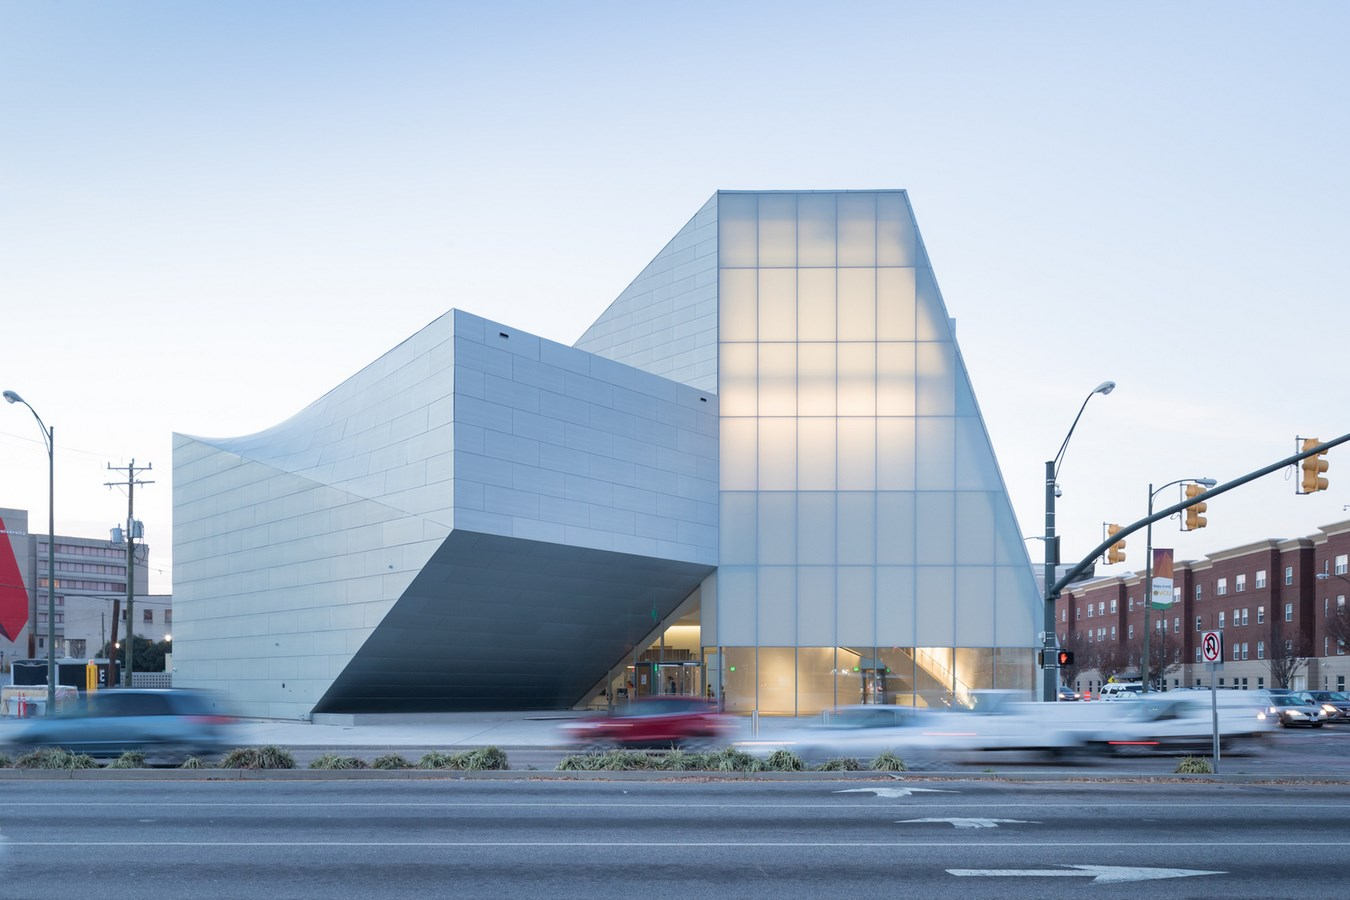 25 Projects by Steven Holl that mark his shift from Typology to Phenomenology - Institute for contemporary art, VCU